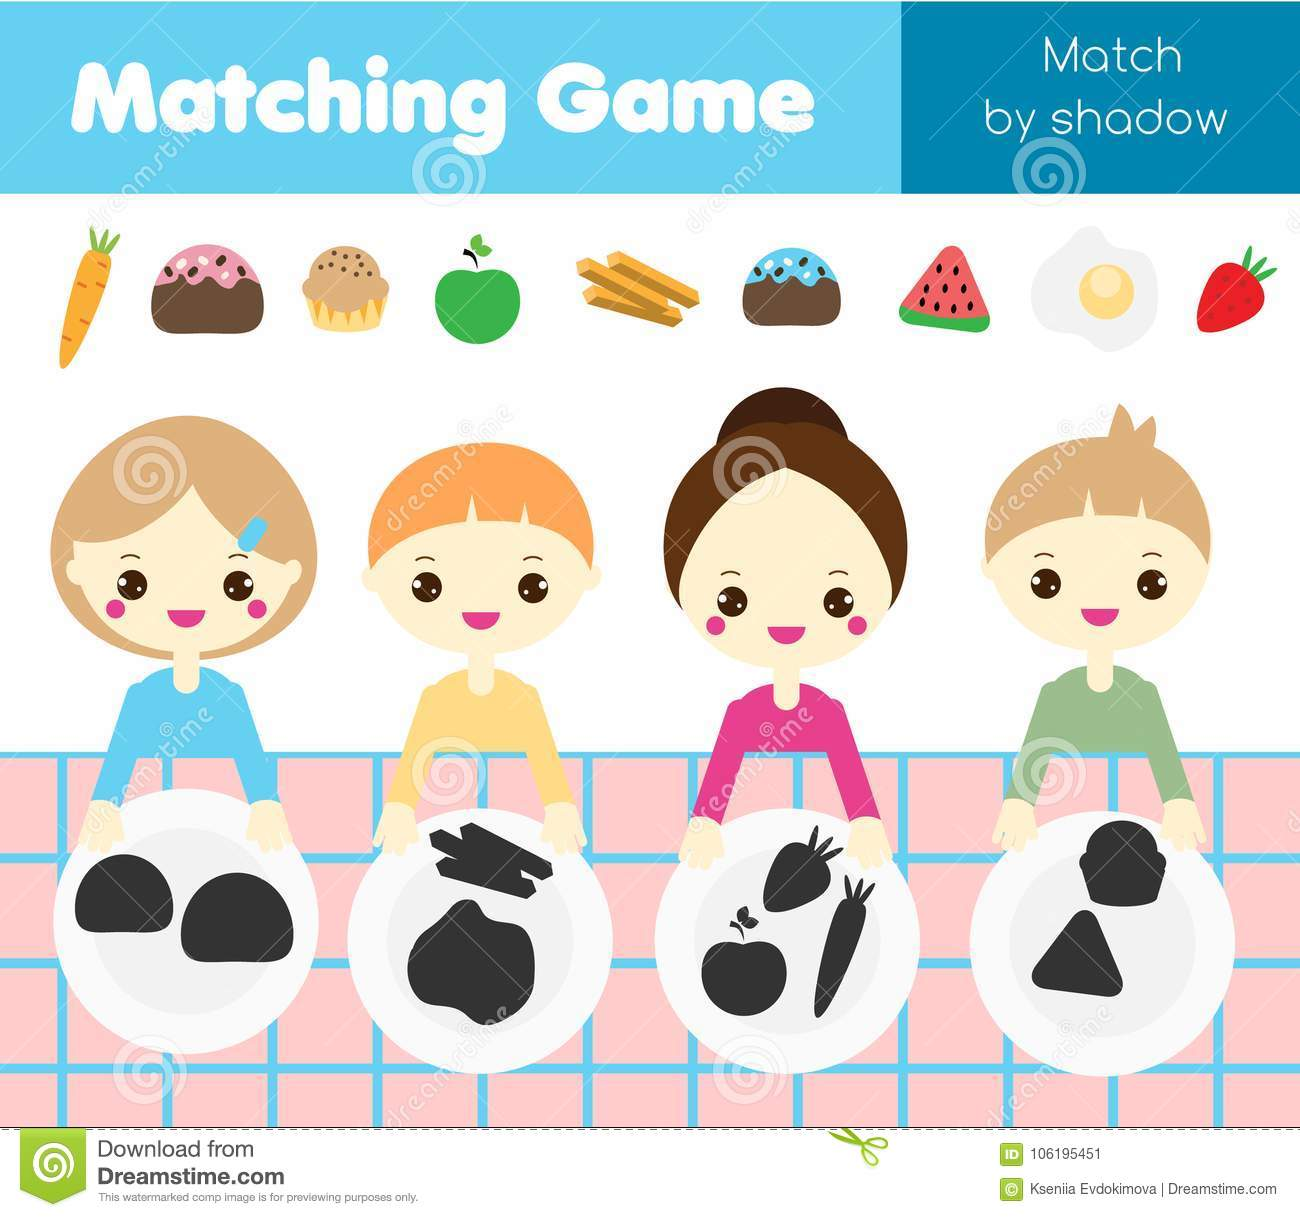 Shadow Matching Game Kids Activity With Food Put Meal